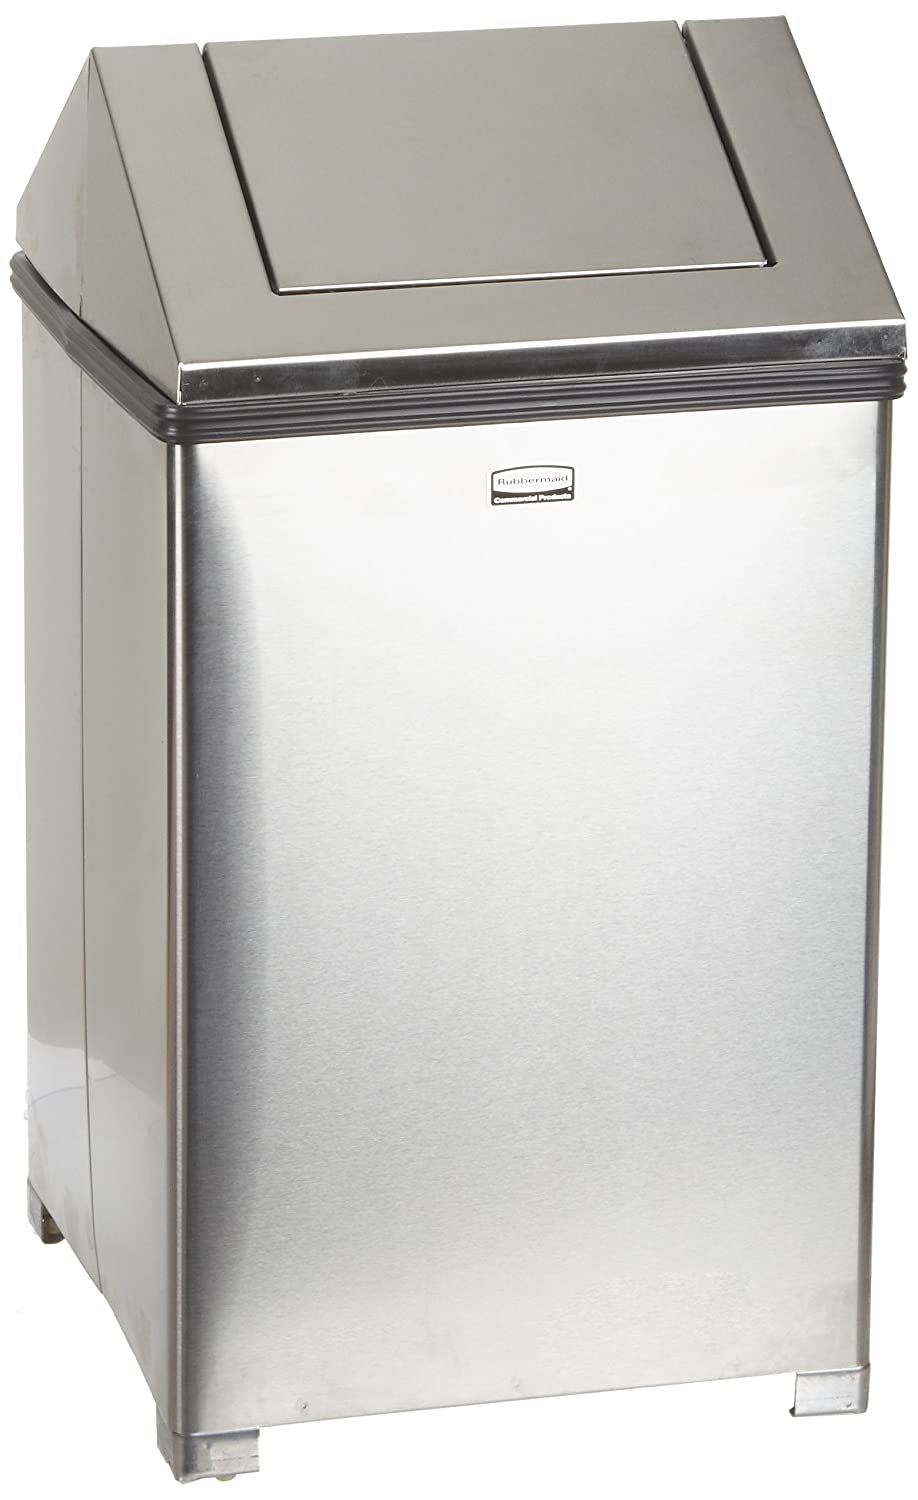 Rubbermaid Commercial FGT1424SSRB WasteMaster Steel Hinged Top Indoor  Utility Trash Can With Retainer Bands, 24 Gallon, Stainless Steel: Waste  Bins: ...